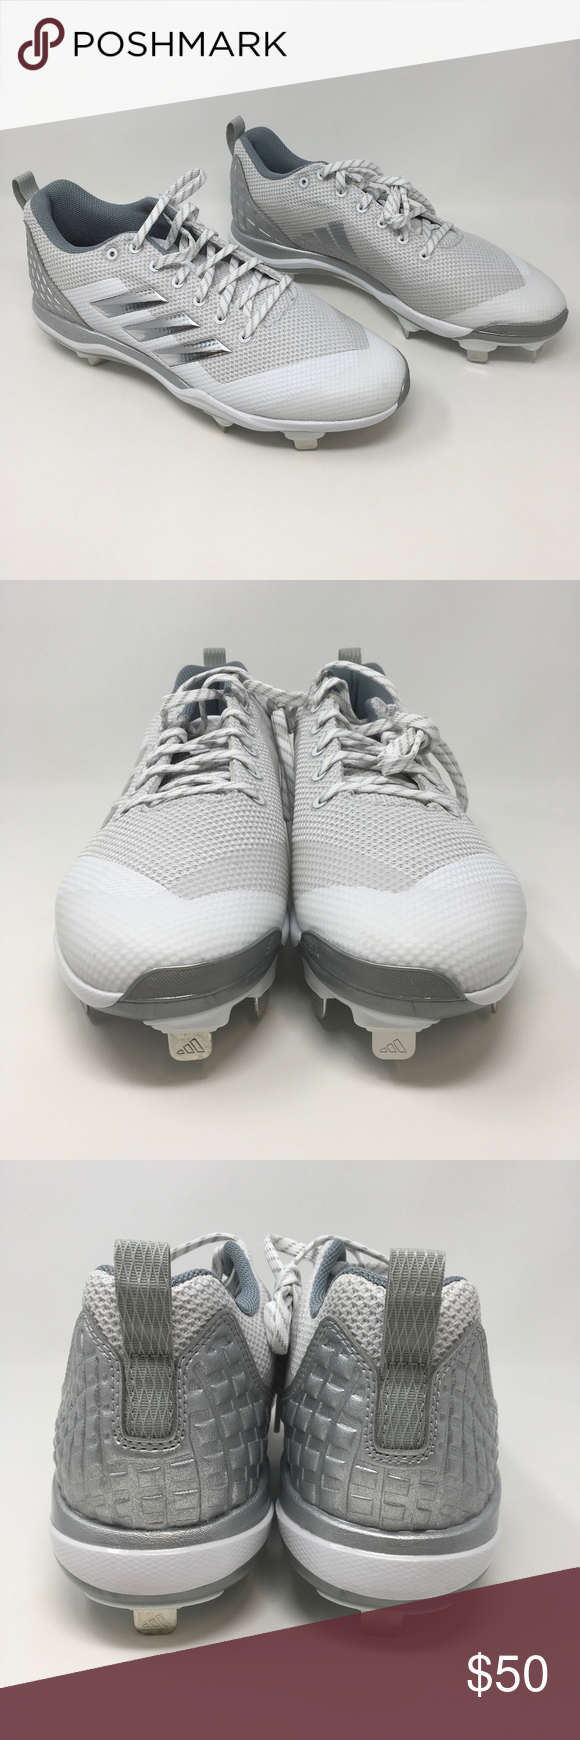 549f02a80c3b Adidas Cleats Power Alley 5 Baseball Style B39190 These mens Nike cleats  are brand new without the box. These cleats are a mens size 11 US.